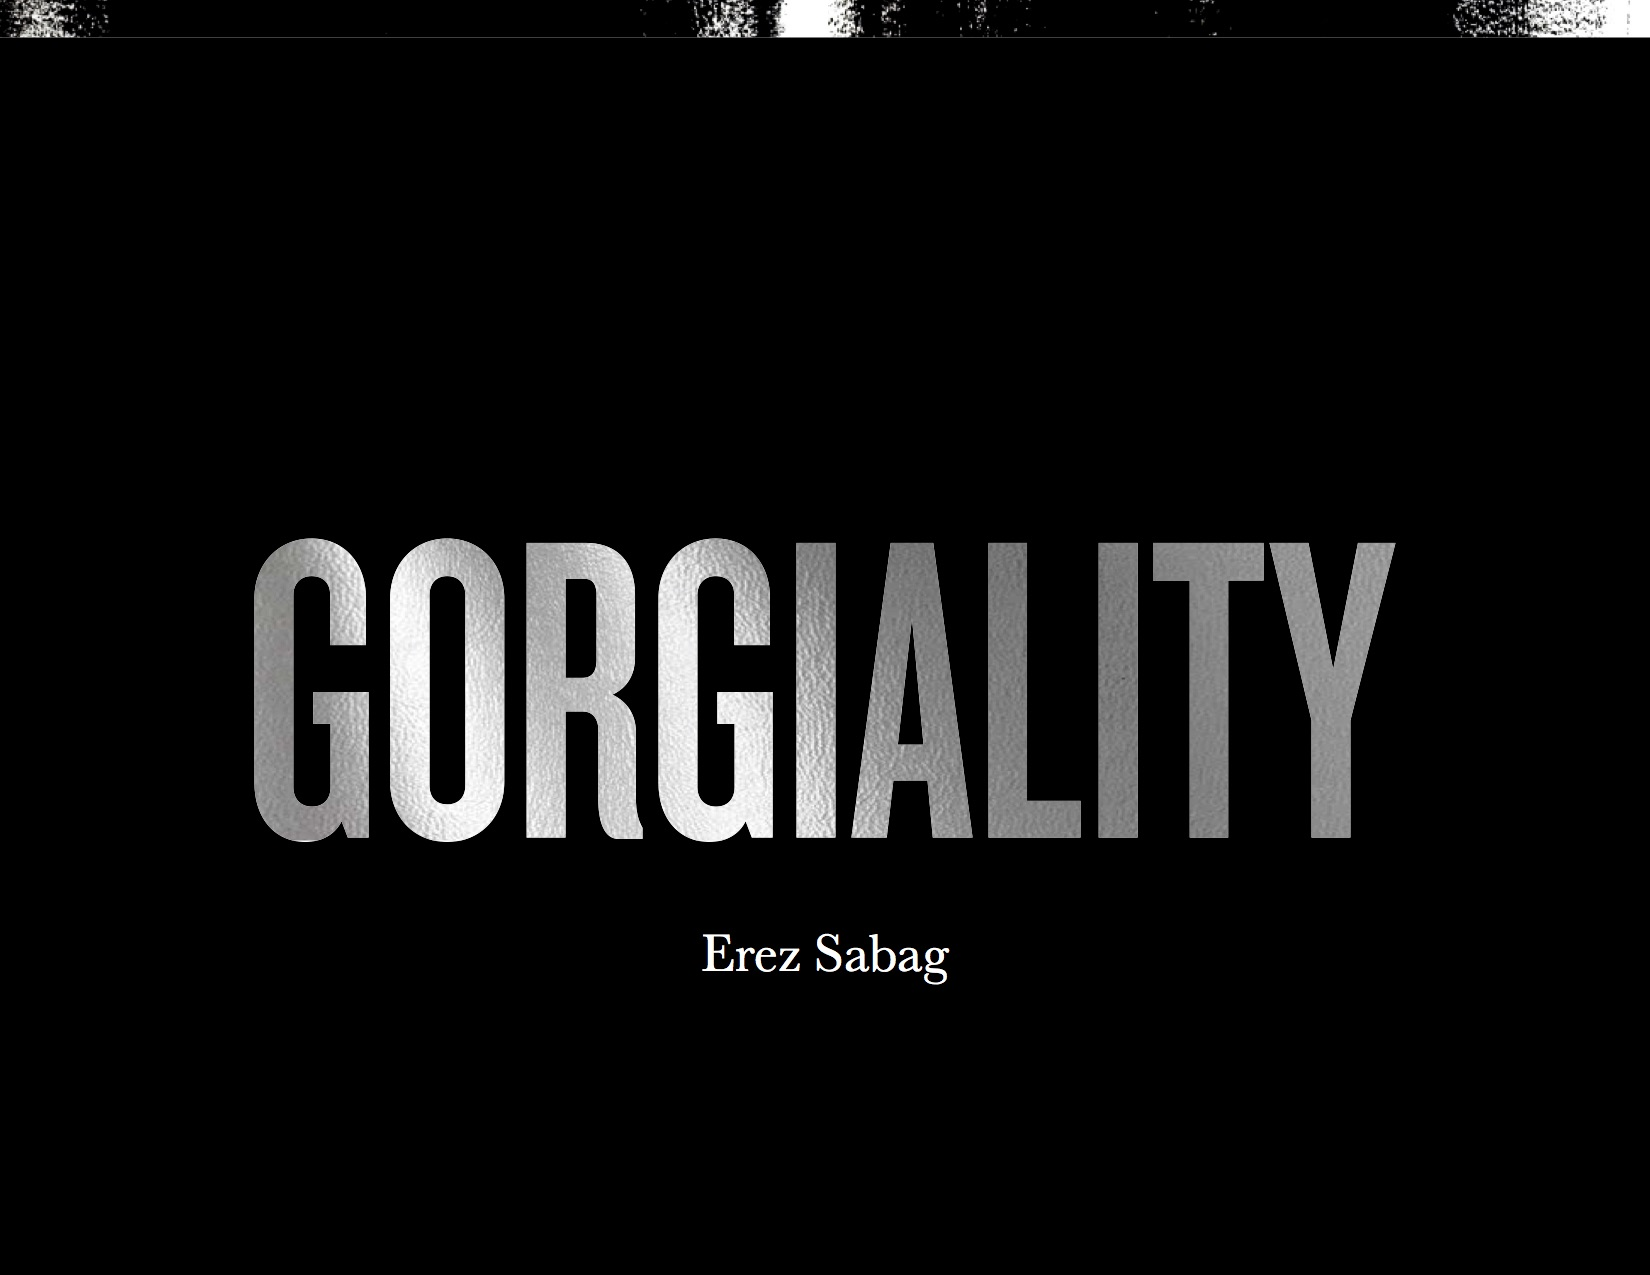 Gorgiality Press Kit1.jpg